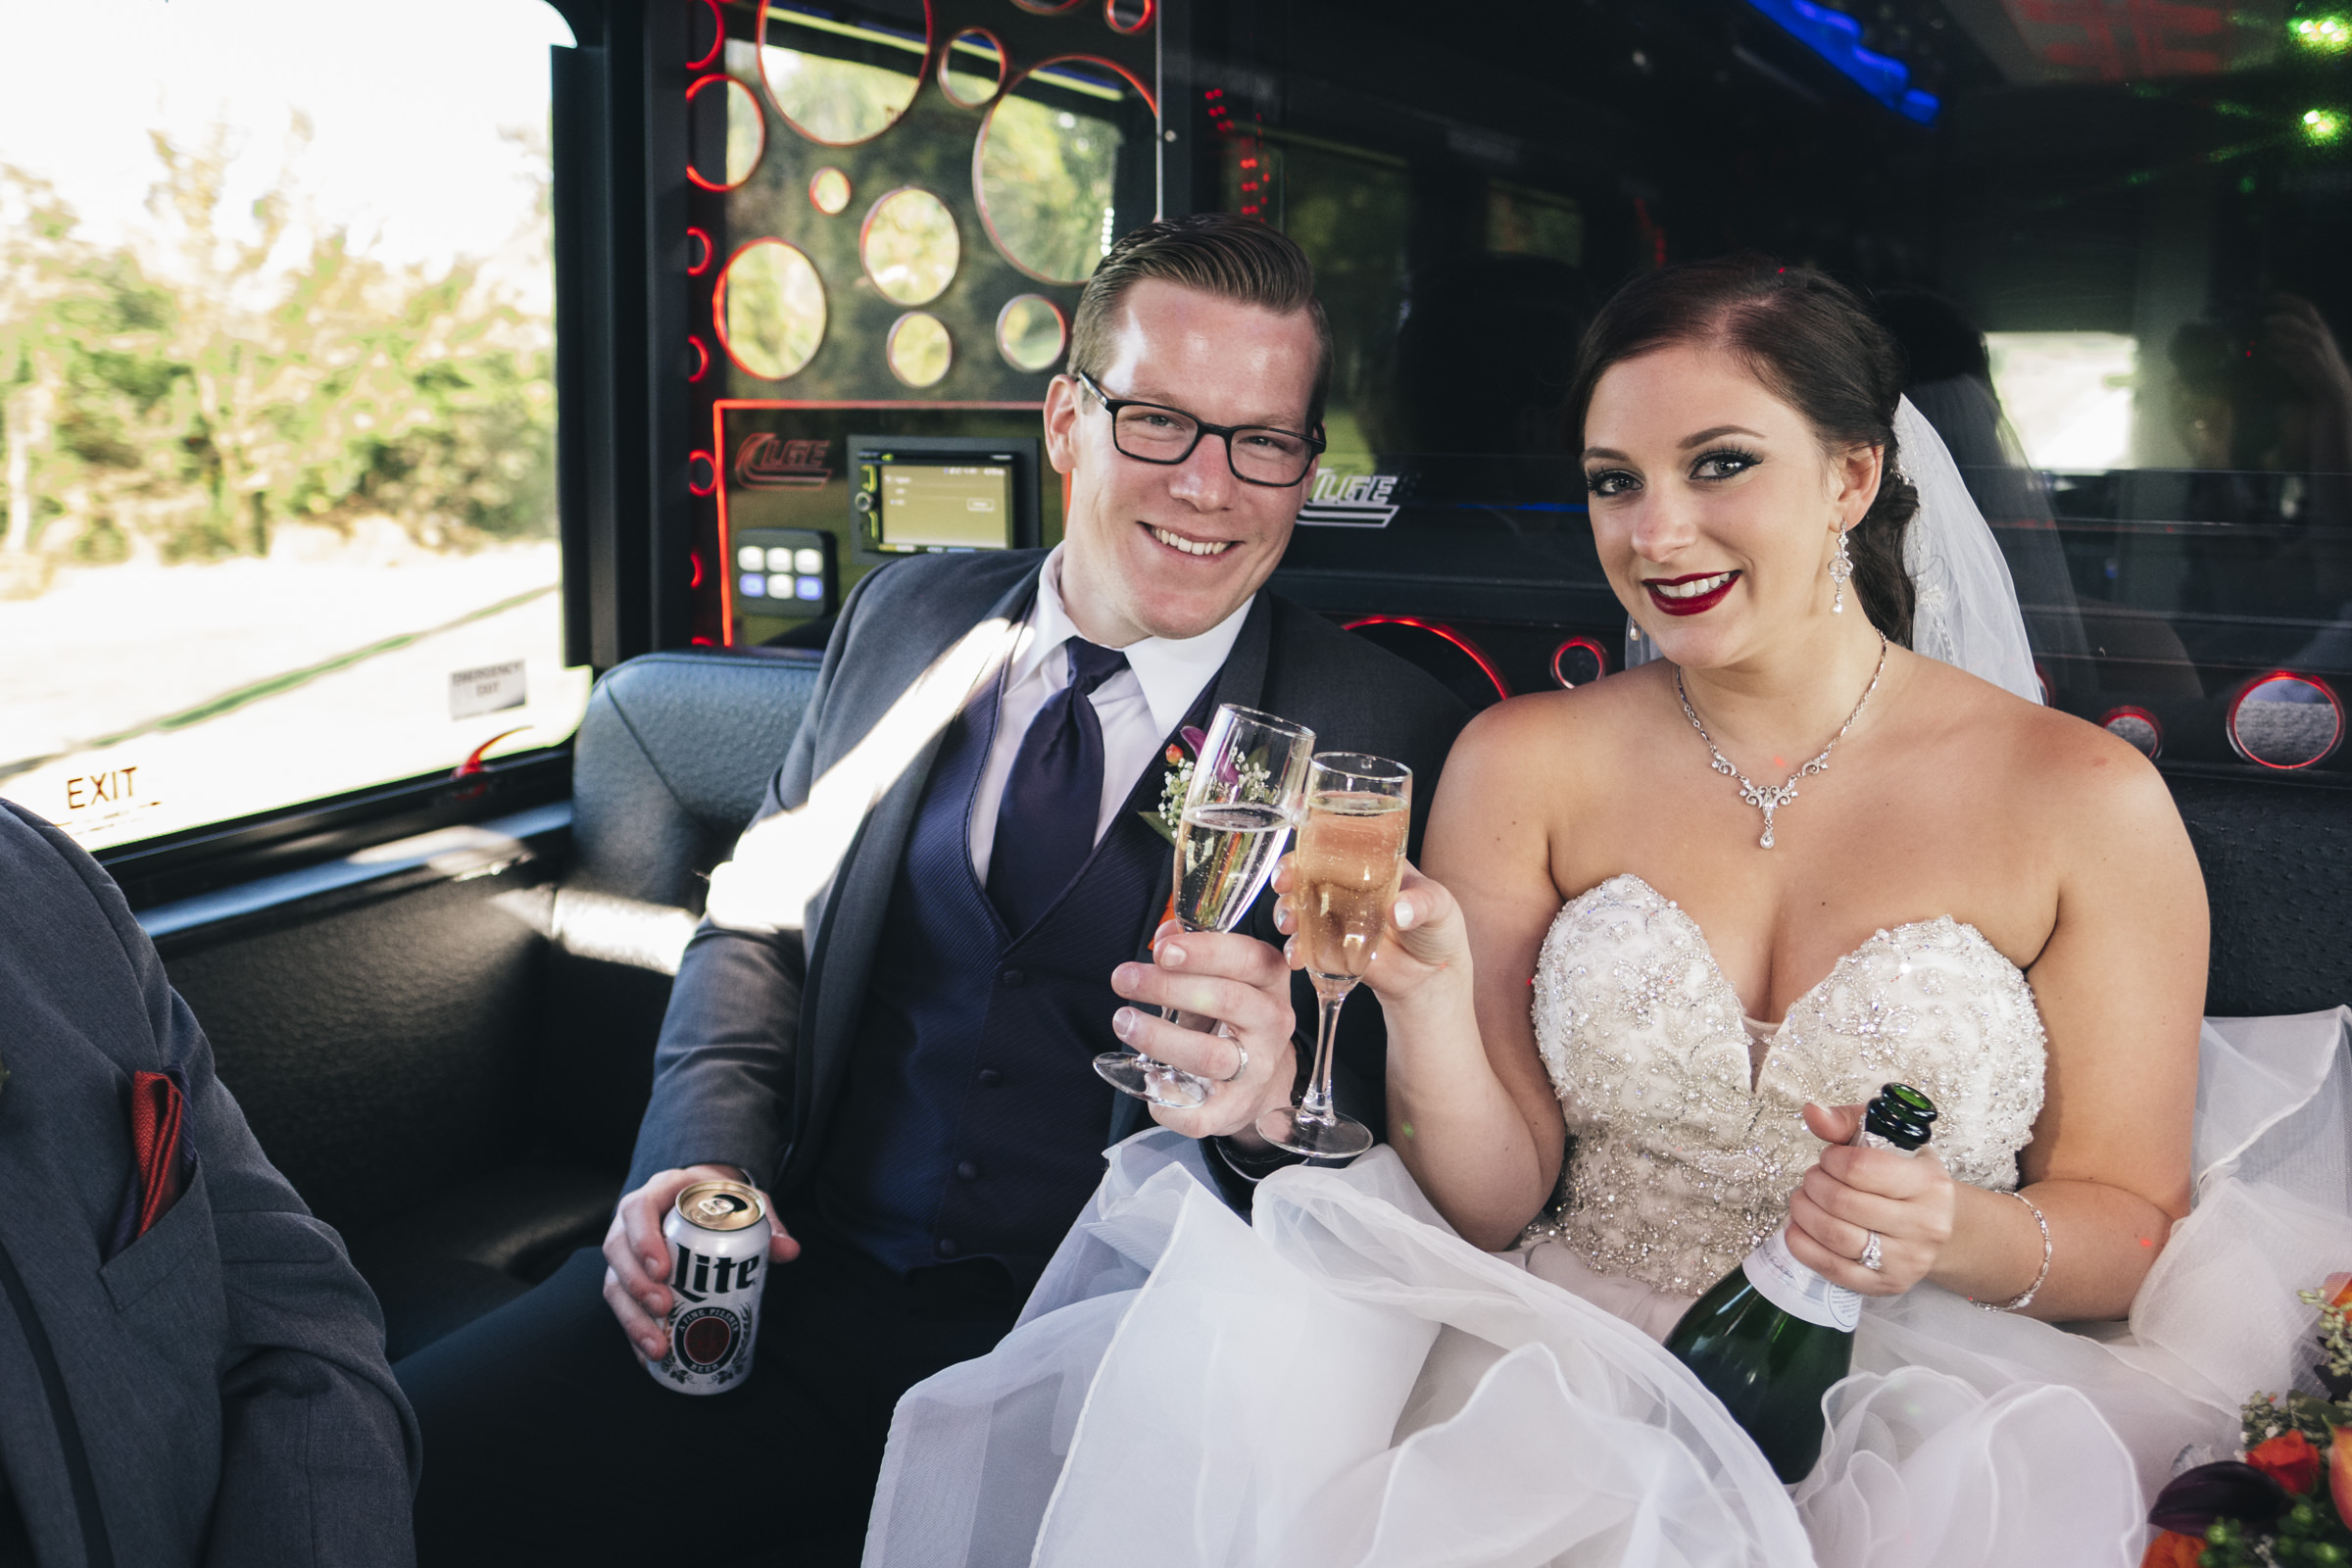 Bride and groom toast with champagne after wedding in party bus.